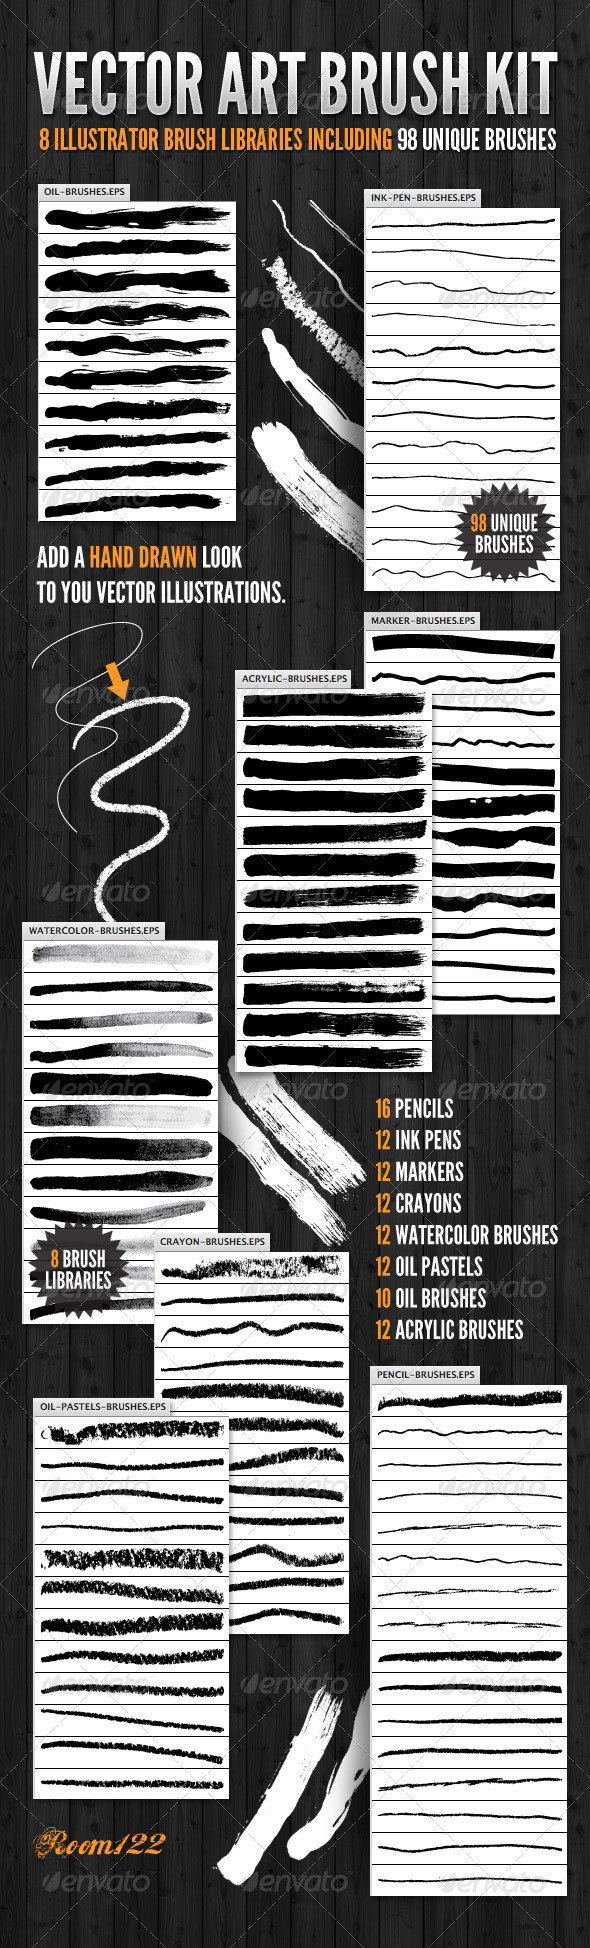 Vector Art Brush Kit - Artistic Brushes